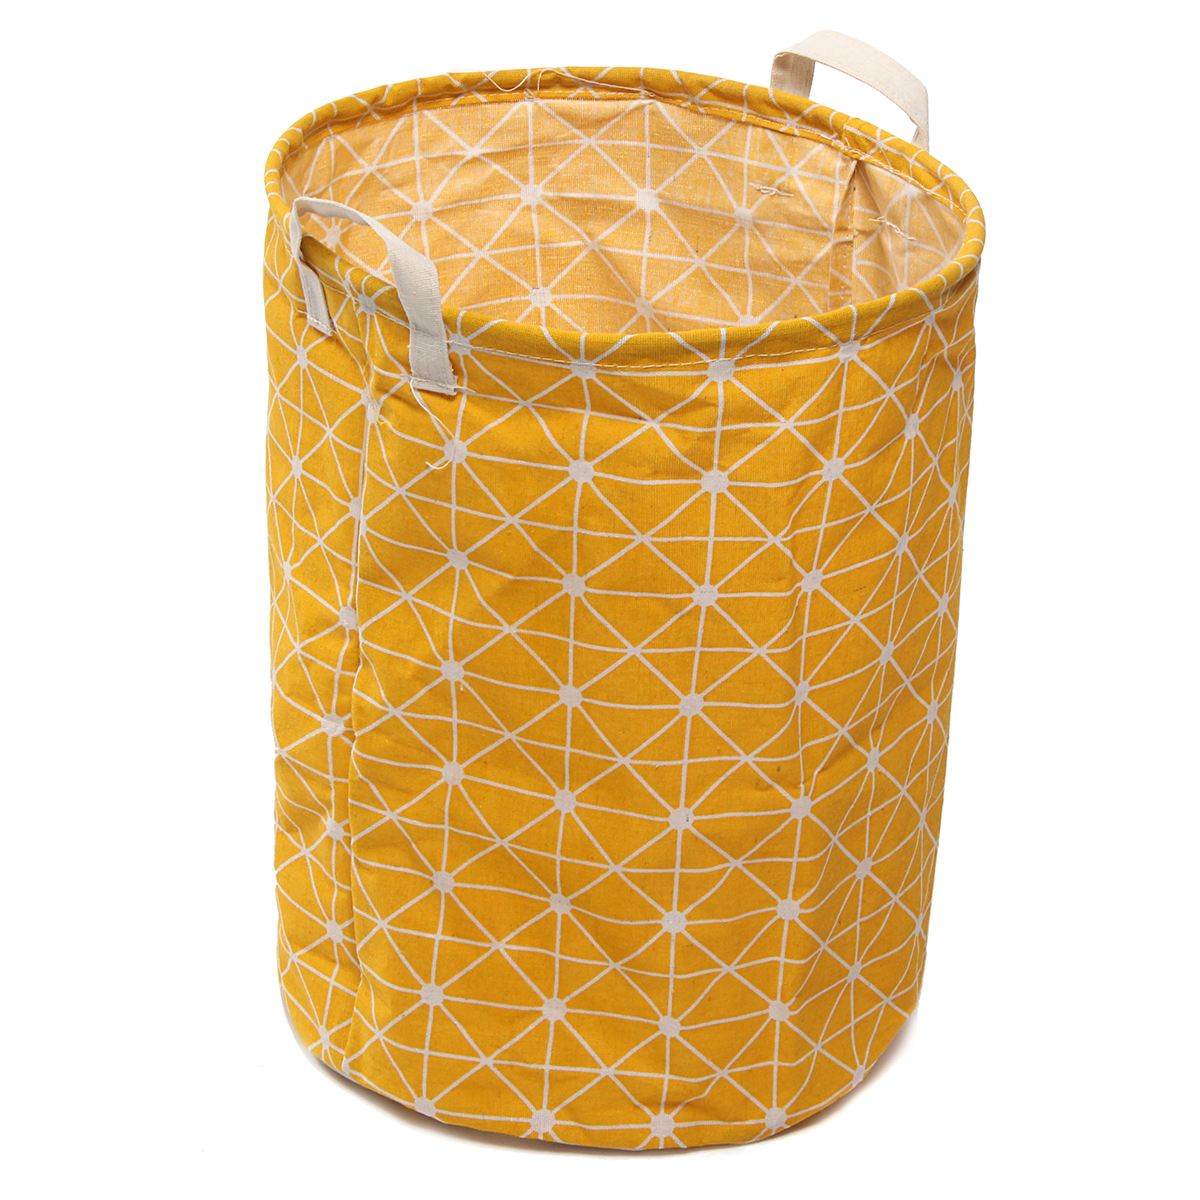 Cotton Linen 35x45cm Foldable Washing Dirty Clothes Laundry Basket Hamper Canvas Toy Storage Organizer Bag Home Household 13.78 x 17.72''